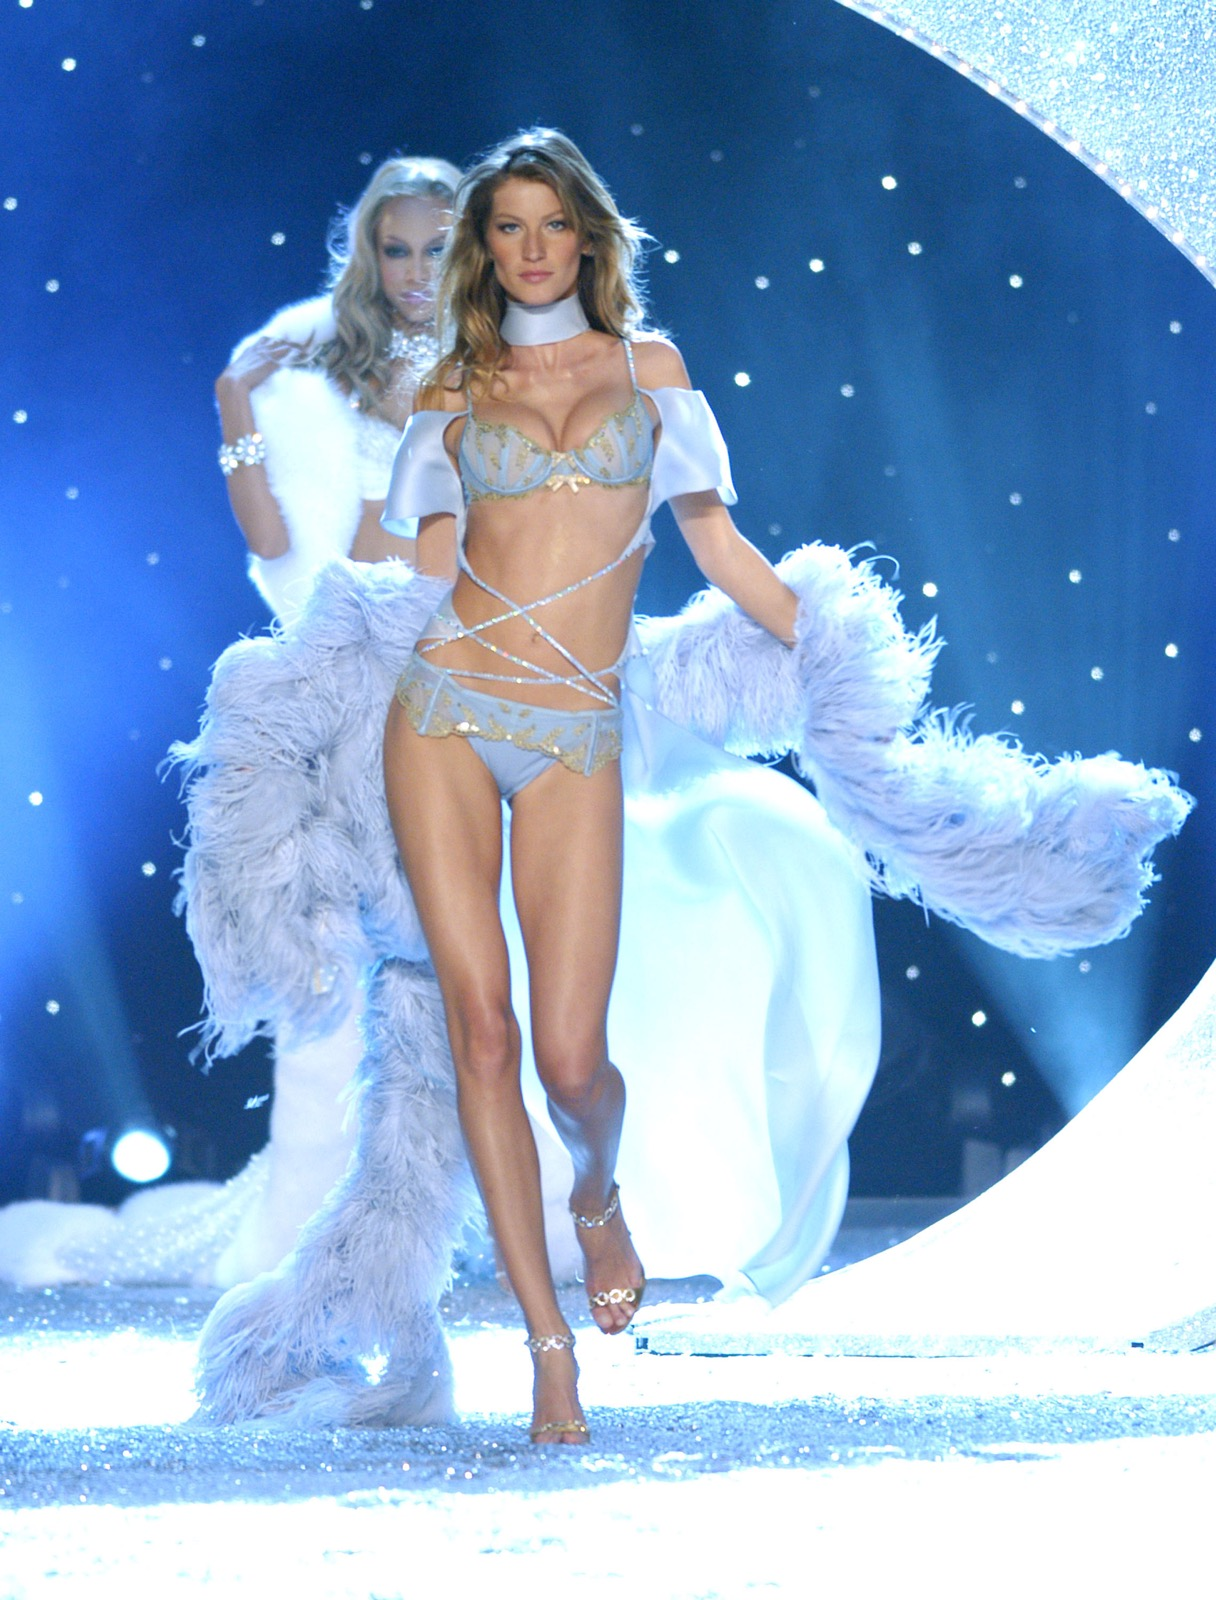 Gisele Bundchen during the 9th Annual Victoria's Secret Fashion Show in New York, November 13, 2003. Kevin Mazur/WireImage/Getty Images